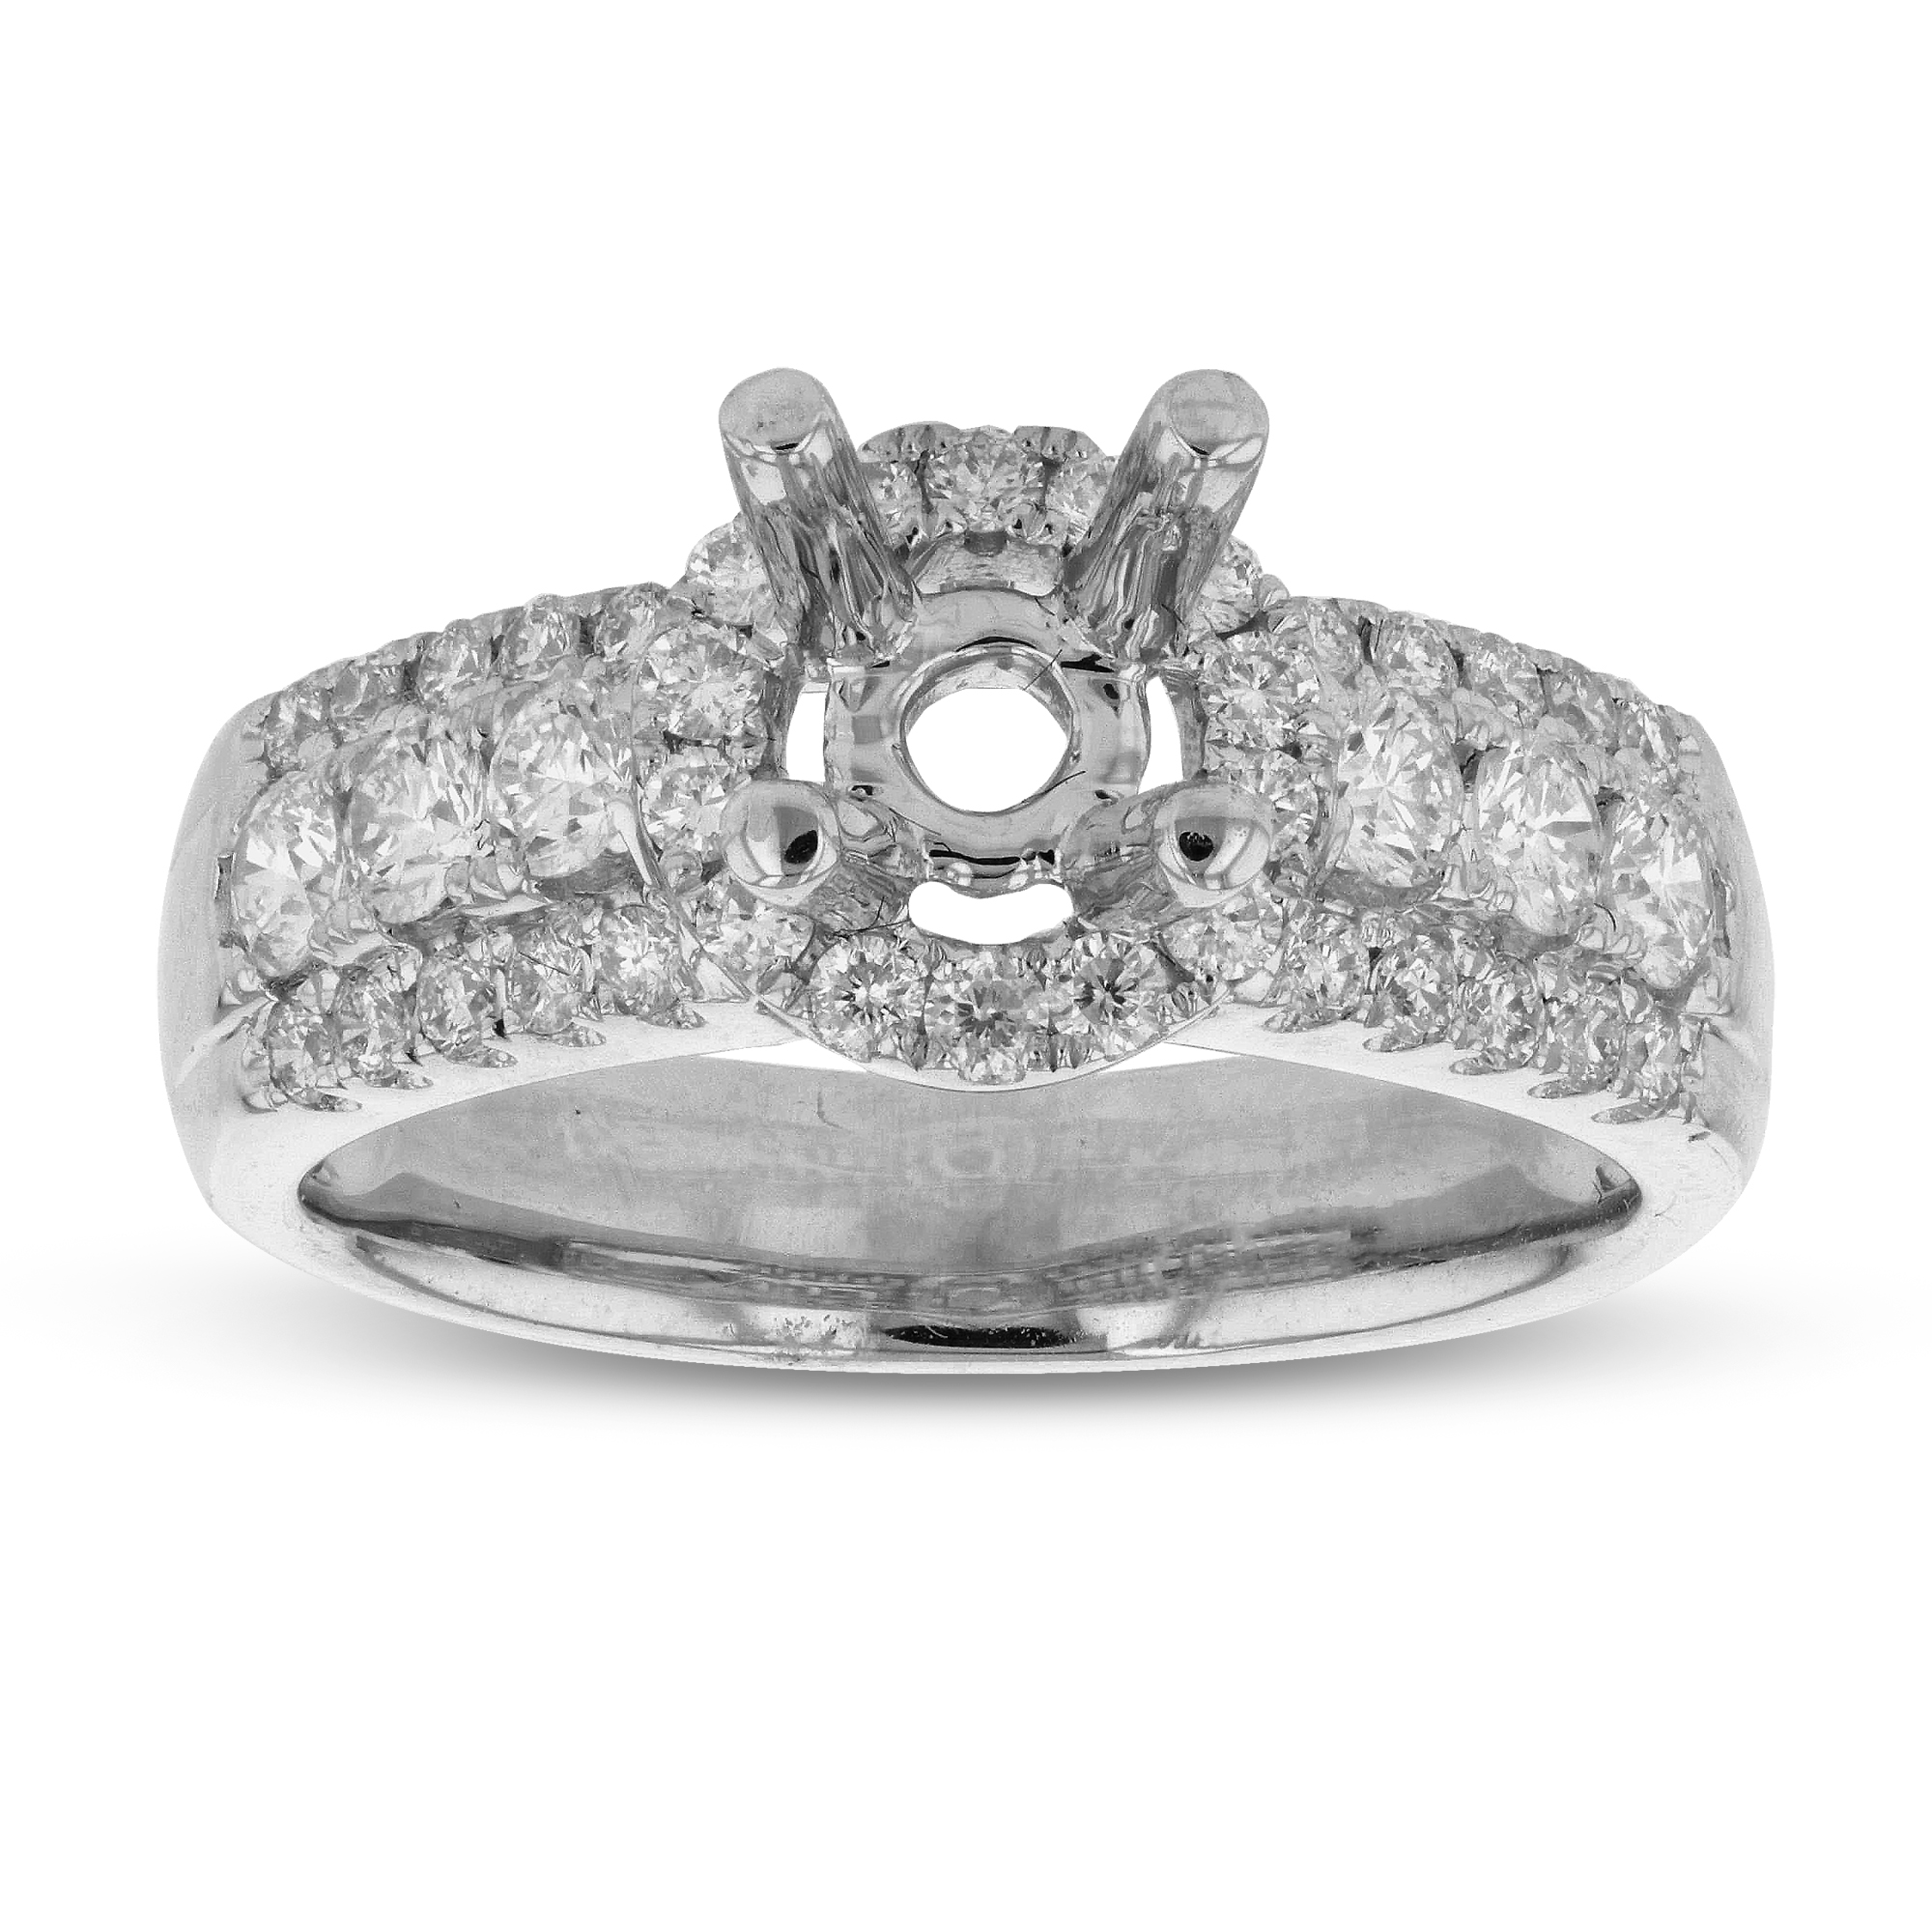 View 0.72ctw Diamonds Semi Mount Engagement Ring in 18k White Gold